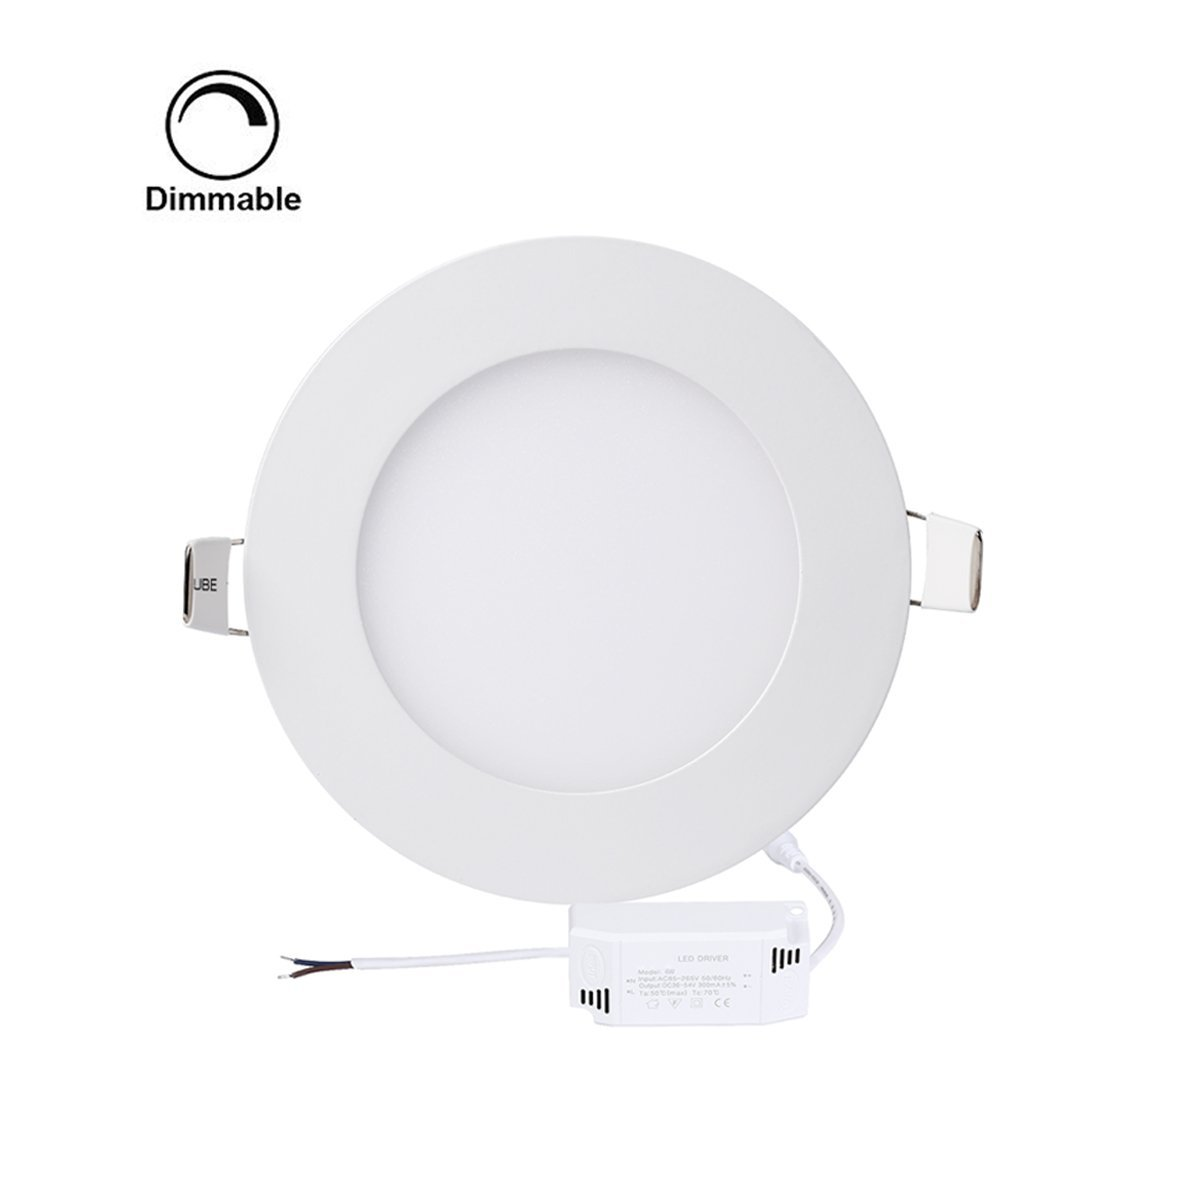 ProGreen 12W Flat LED Panel Light Lamp, Dimmable Round Ultrathin LED Recessed Downlight, 960lm, Cold White 5000K, Cut Hole 6.1 Inch, Panel Ceiling Lighting with 110V LED Driver